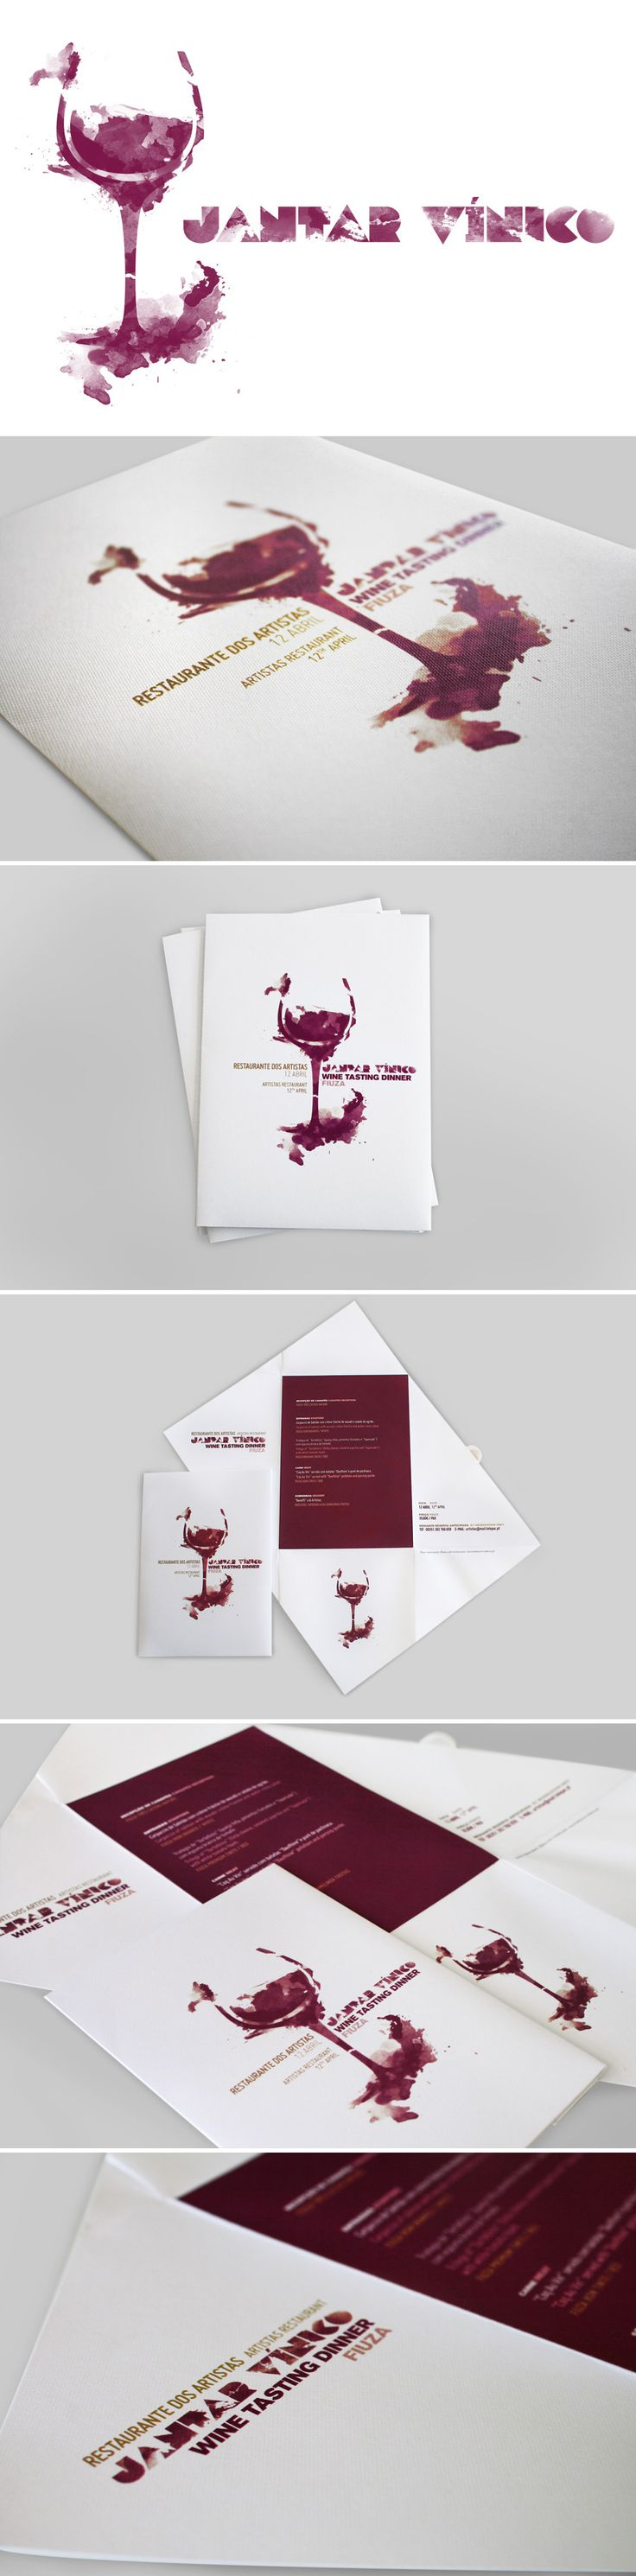 Wine Event - Jantar Vínico invitation Design by Elisabete Calixto #stainsO #cMaroon